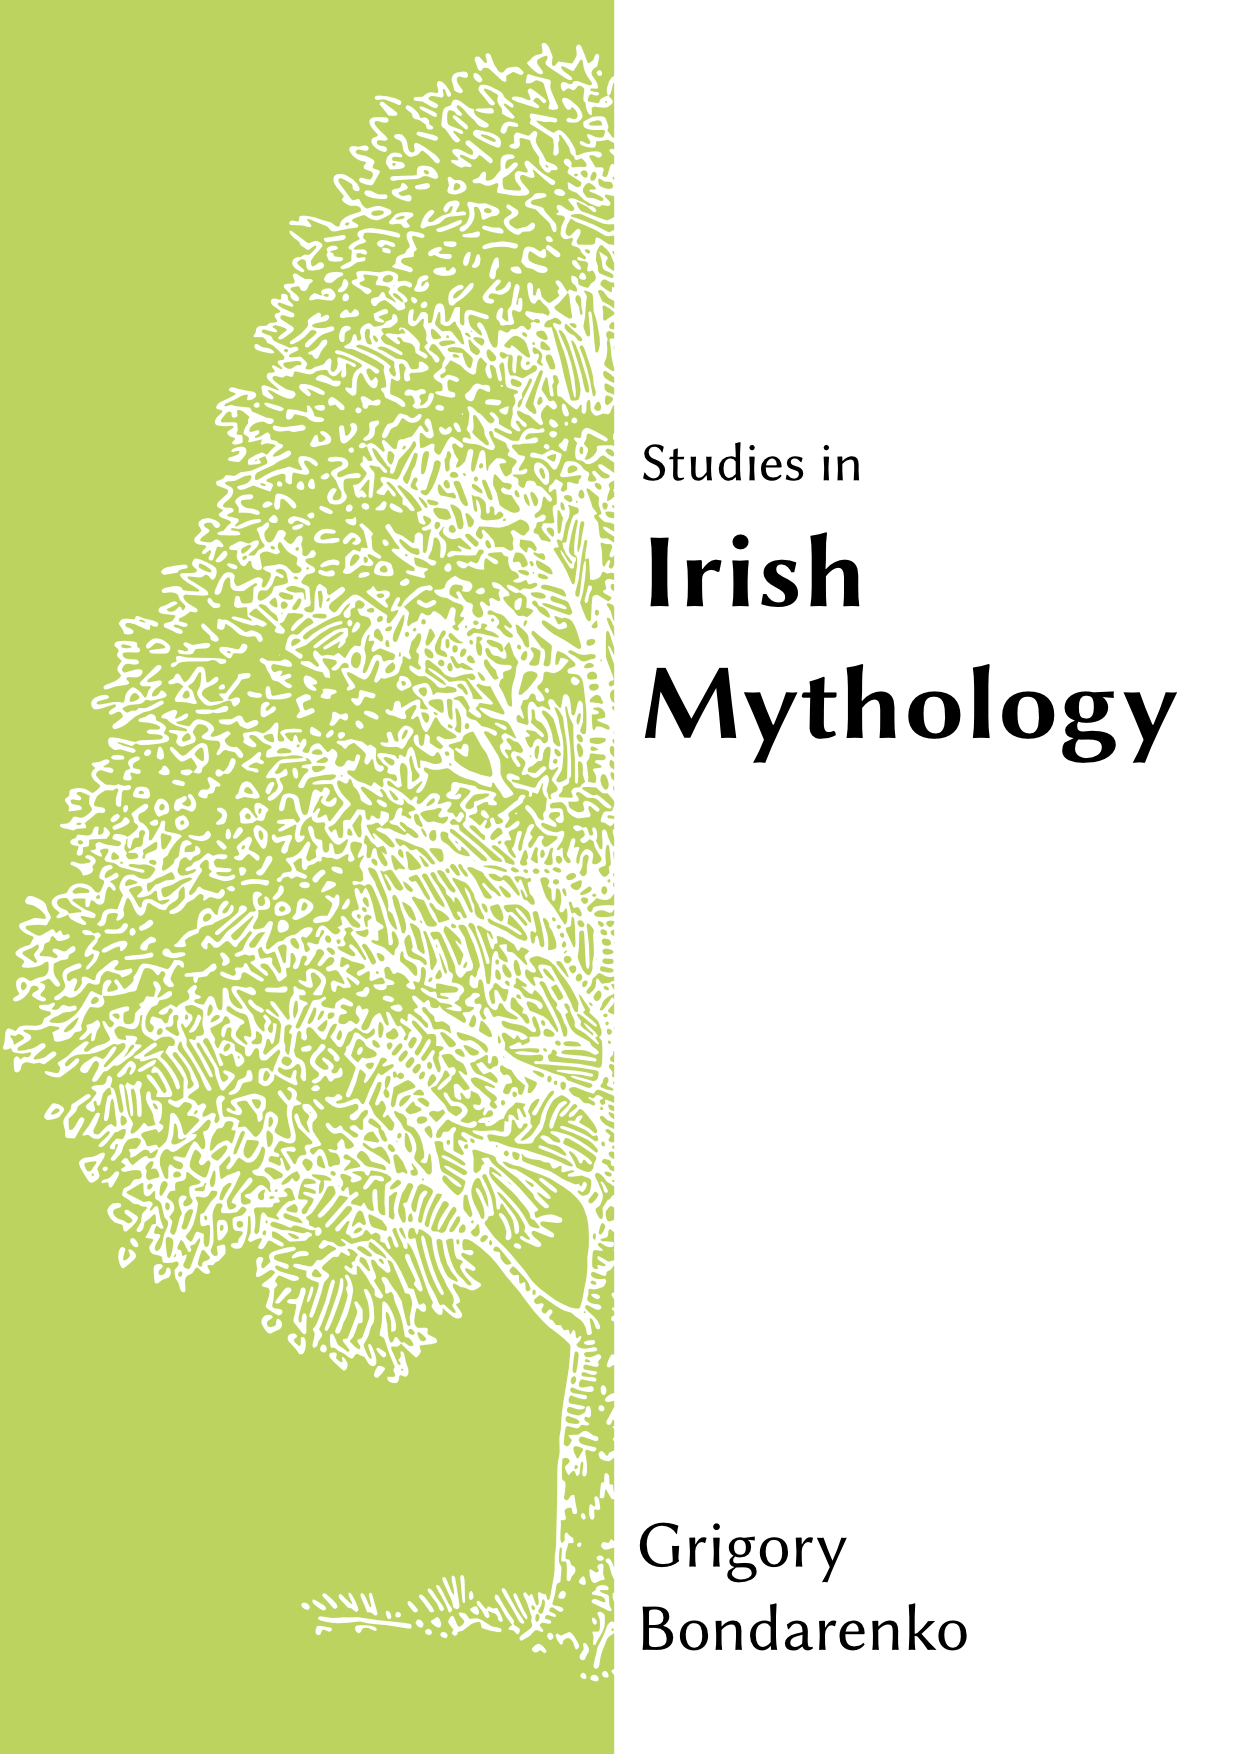 Grigory Bondarenko: Studies in Irish Mythology